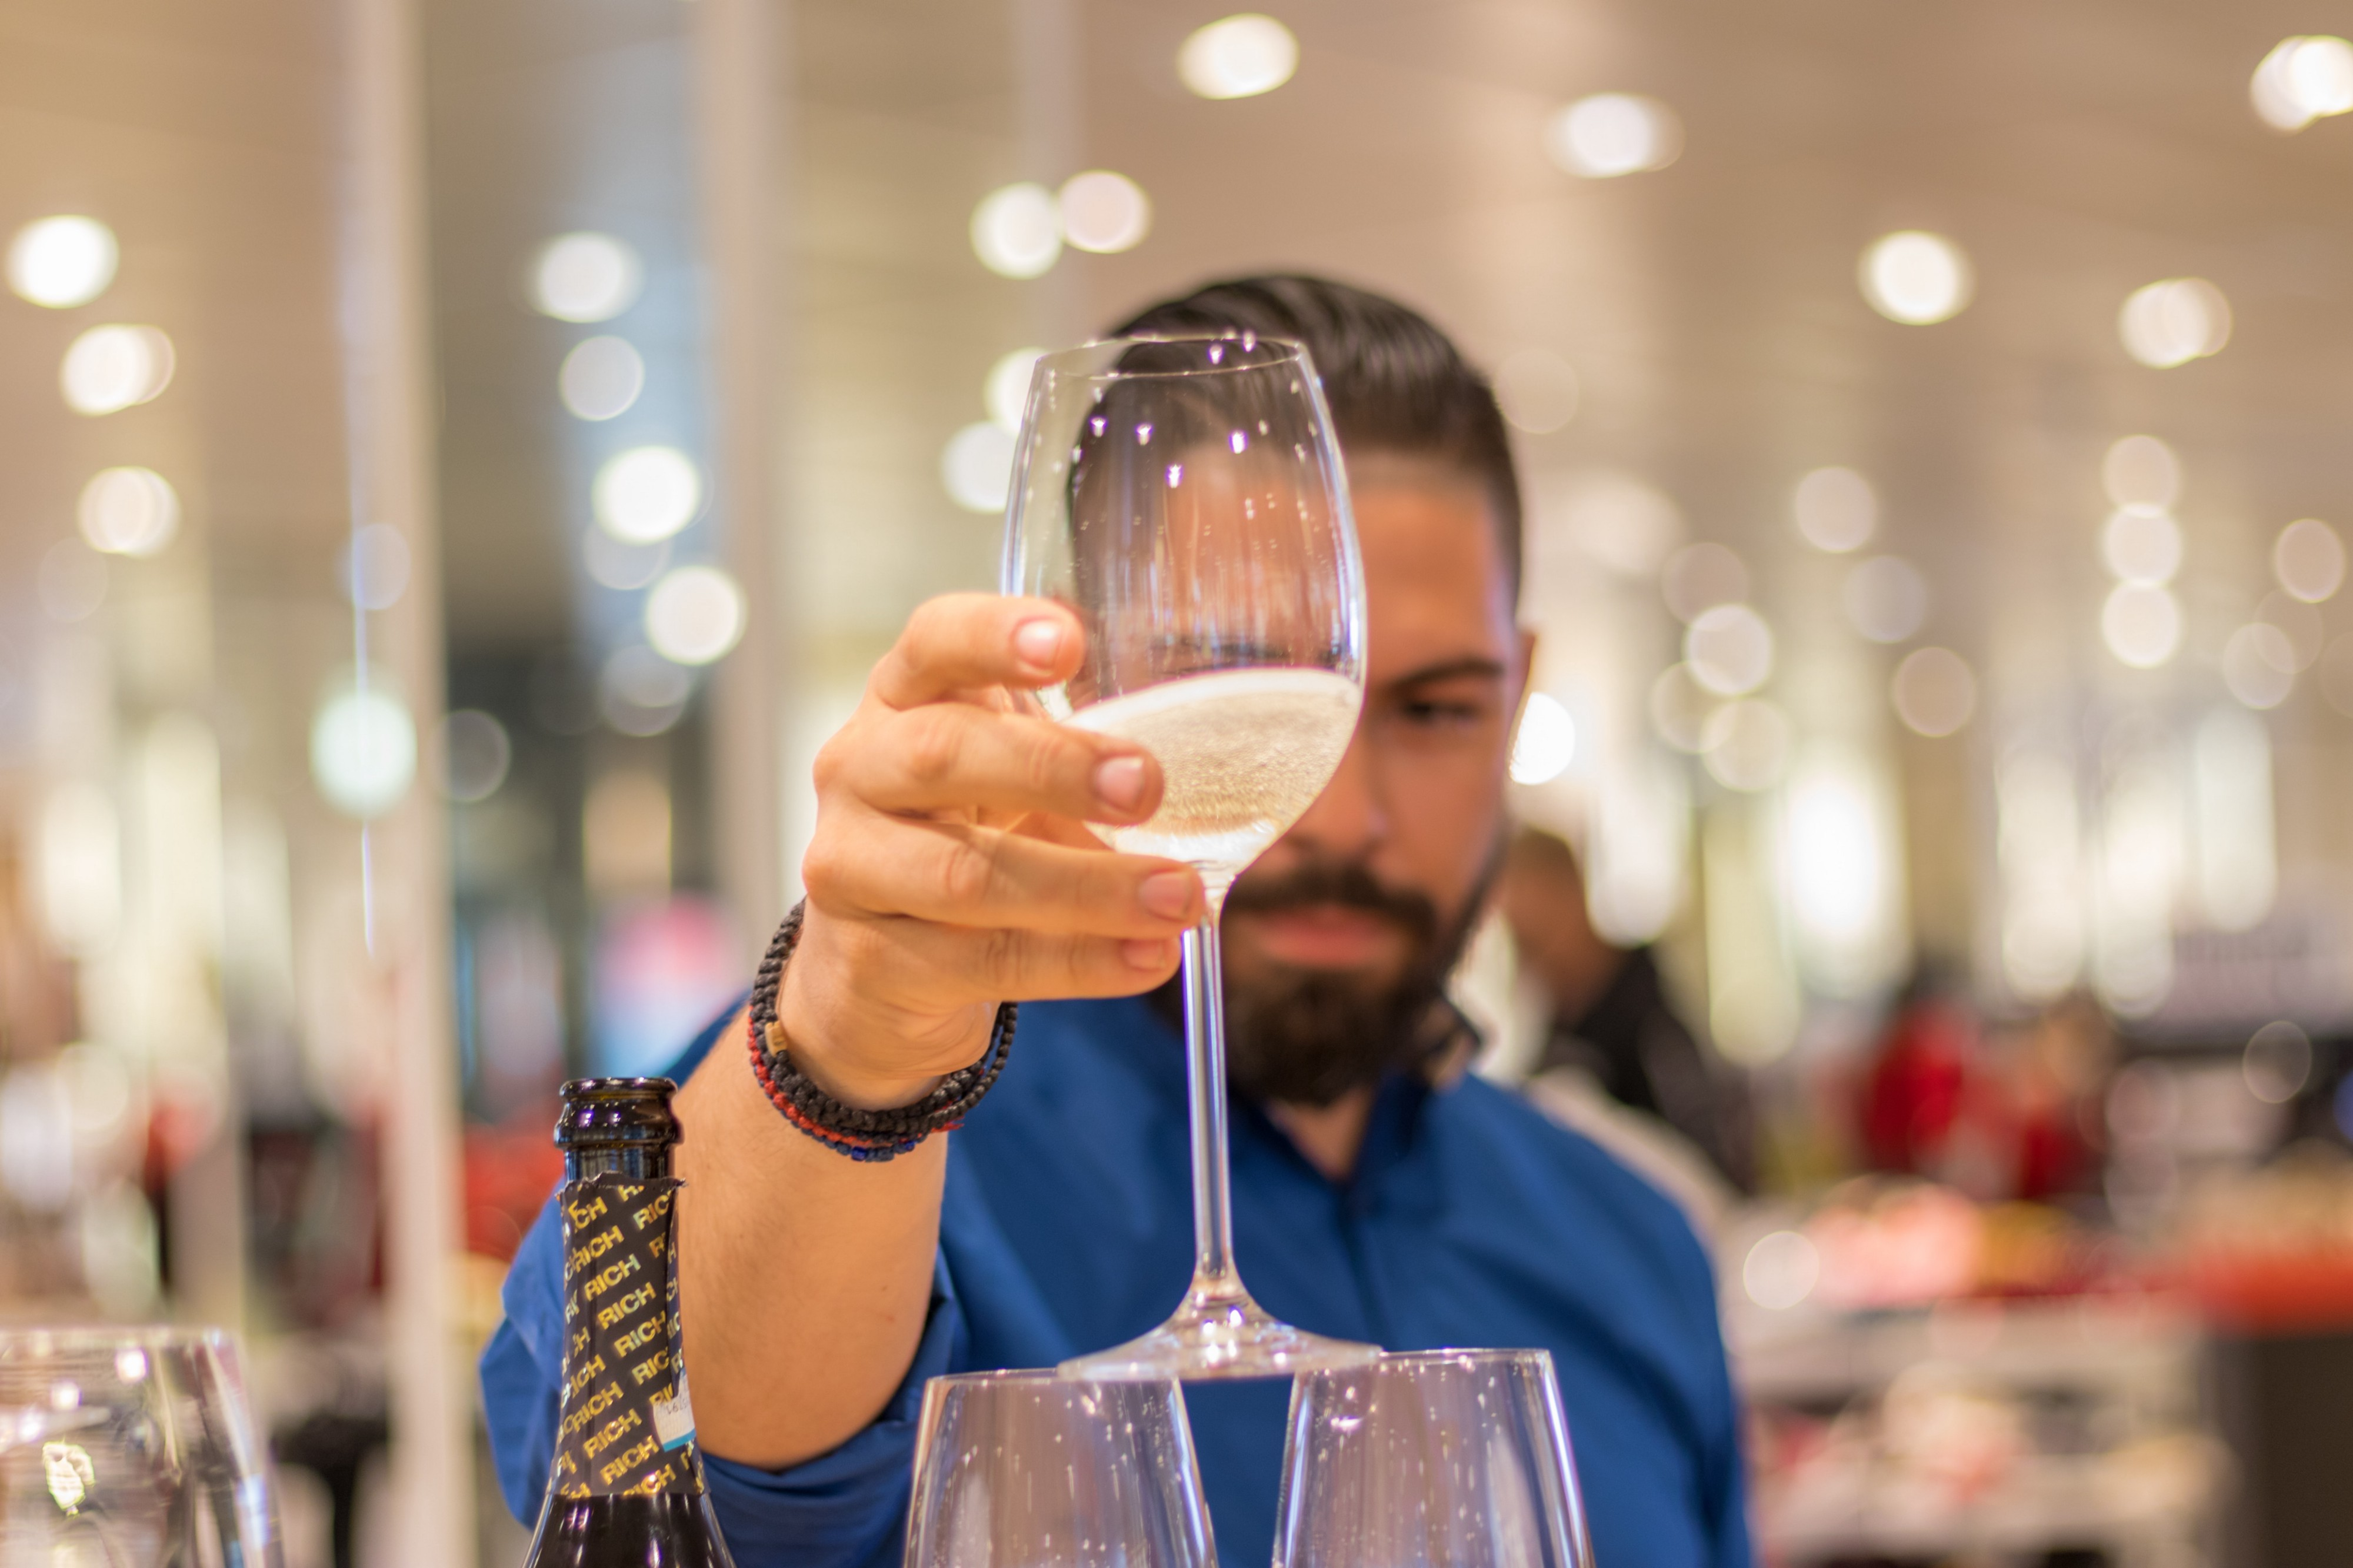 man balancing a wine glass on top of two other wine glasses